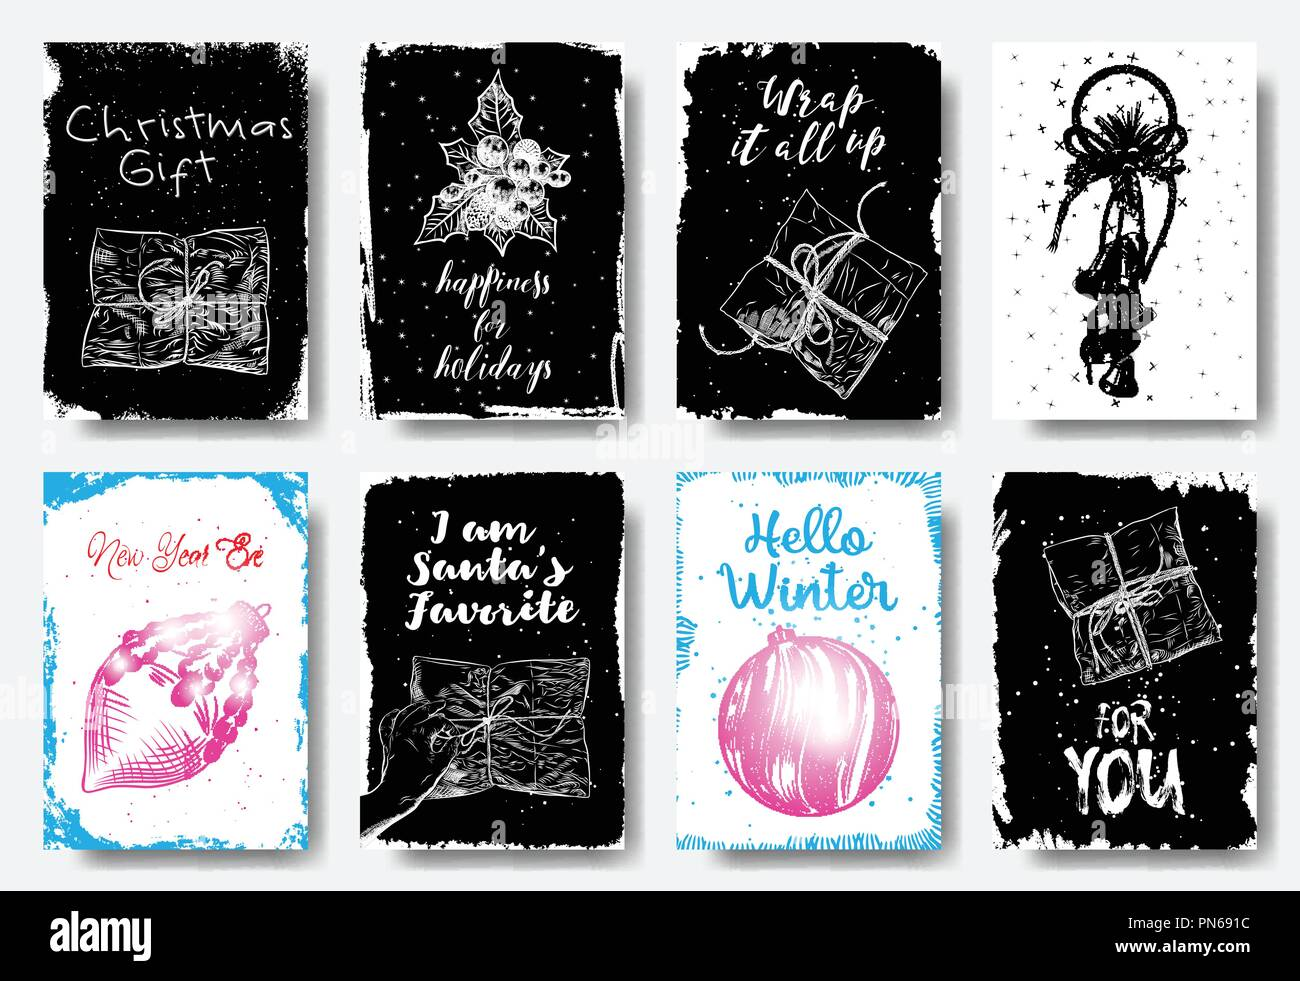 black white and colors decorative hand drawn illustration for winter invitations cards posters gift tags and flyers